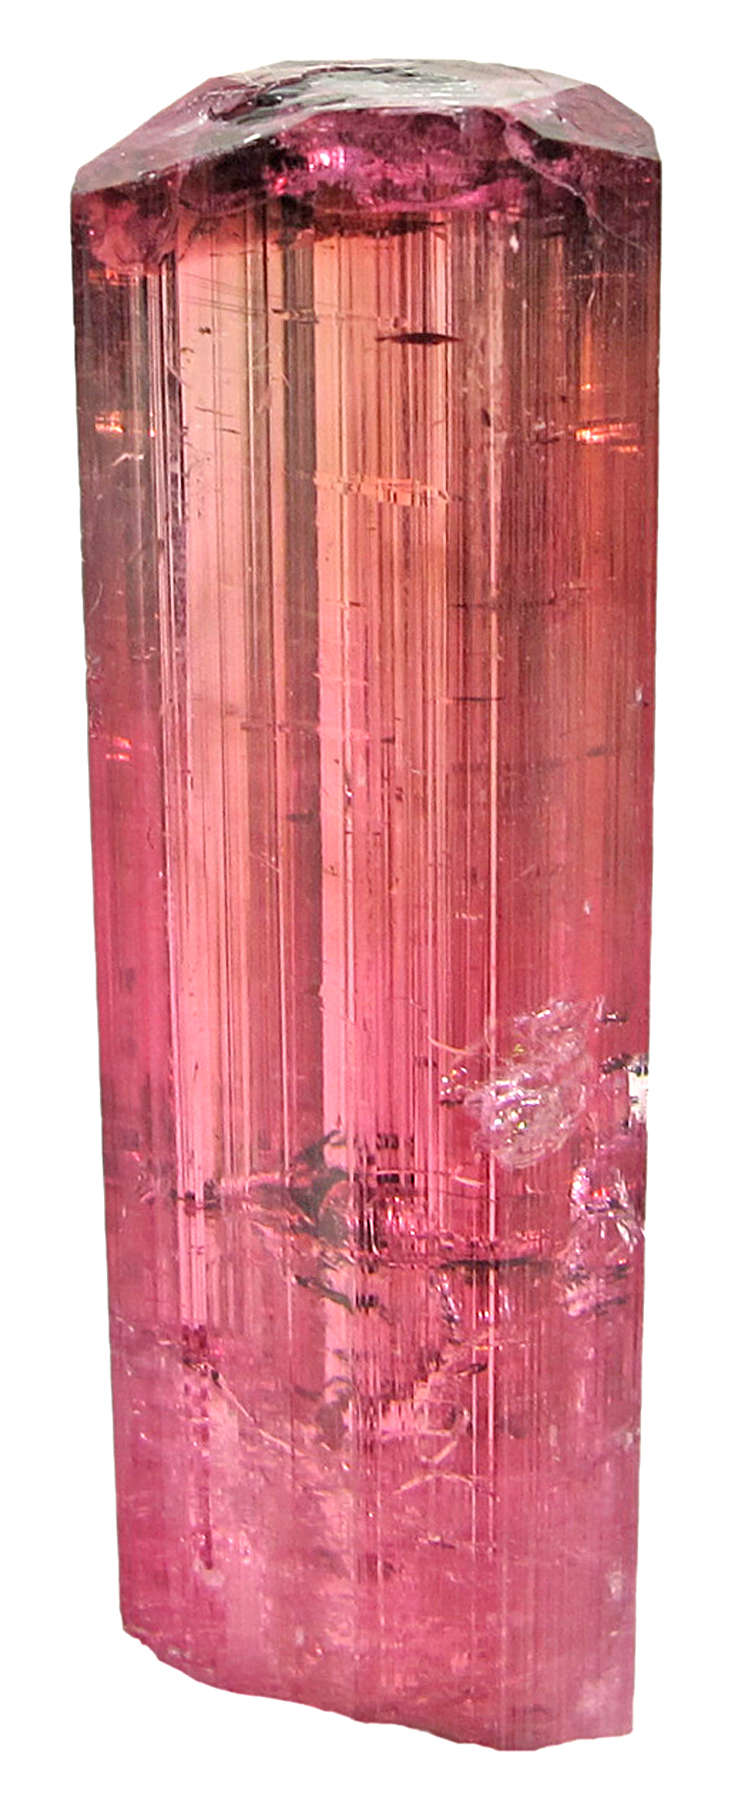 This elbaite crystal limpid glassy gemmy fine raspberry red color